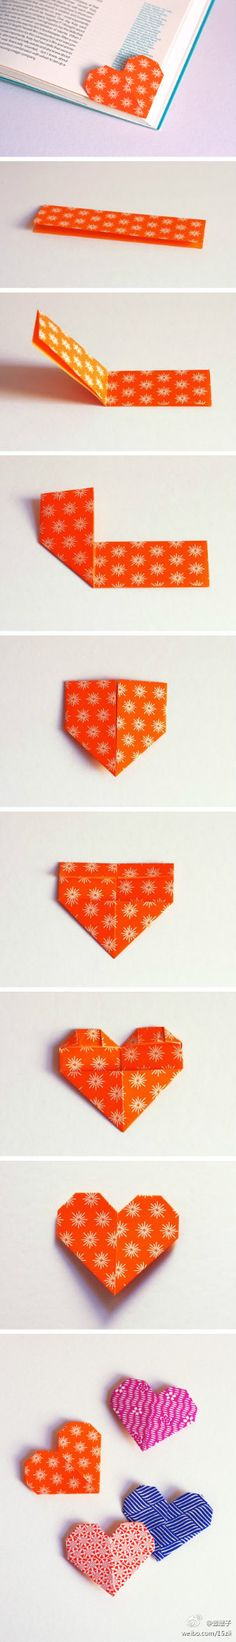 Origami heart bookmark - LOVE this idea!